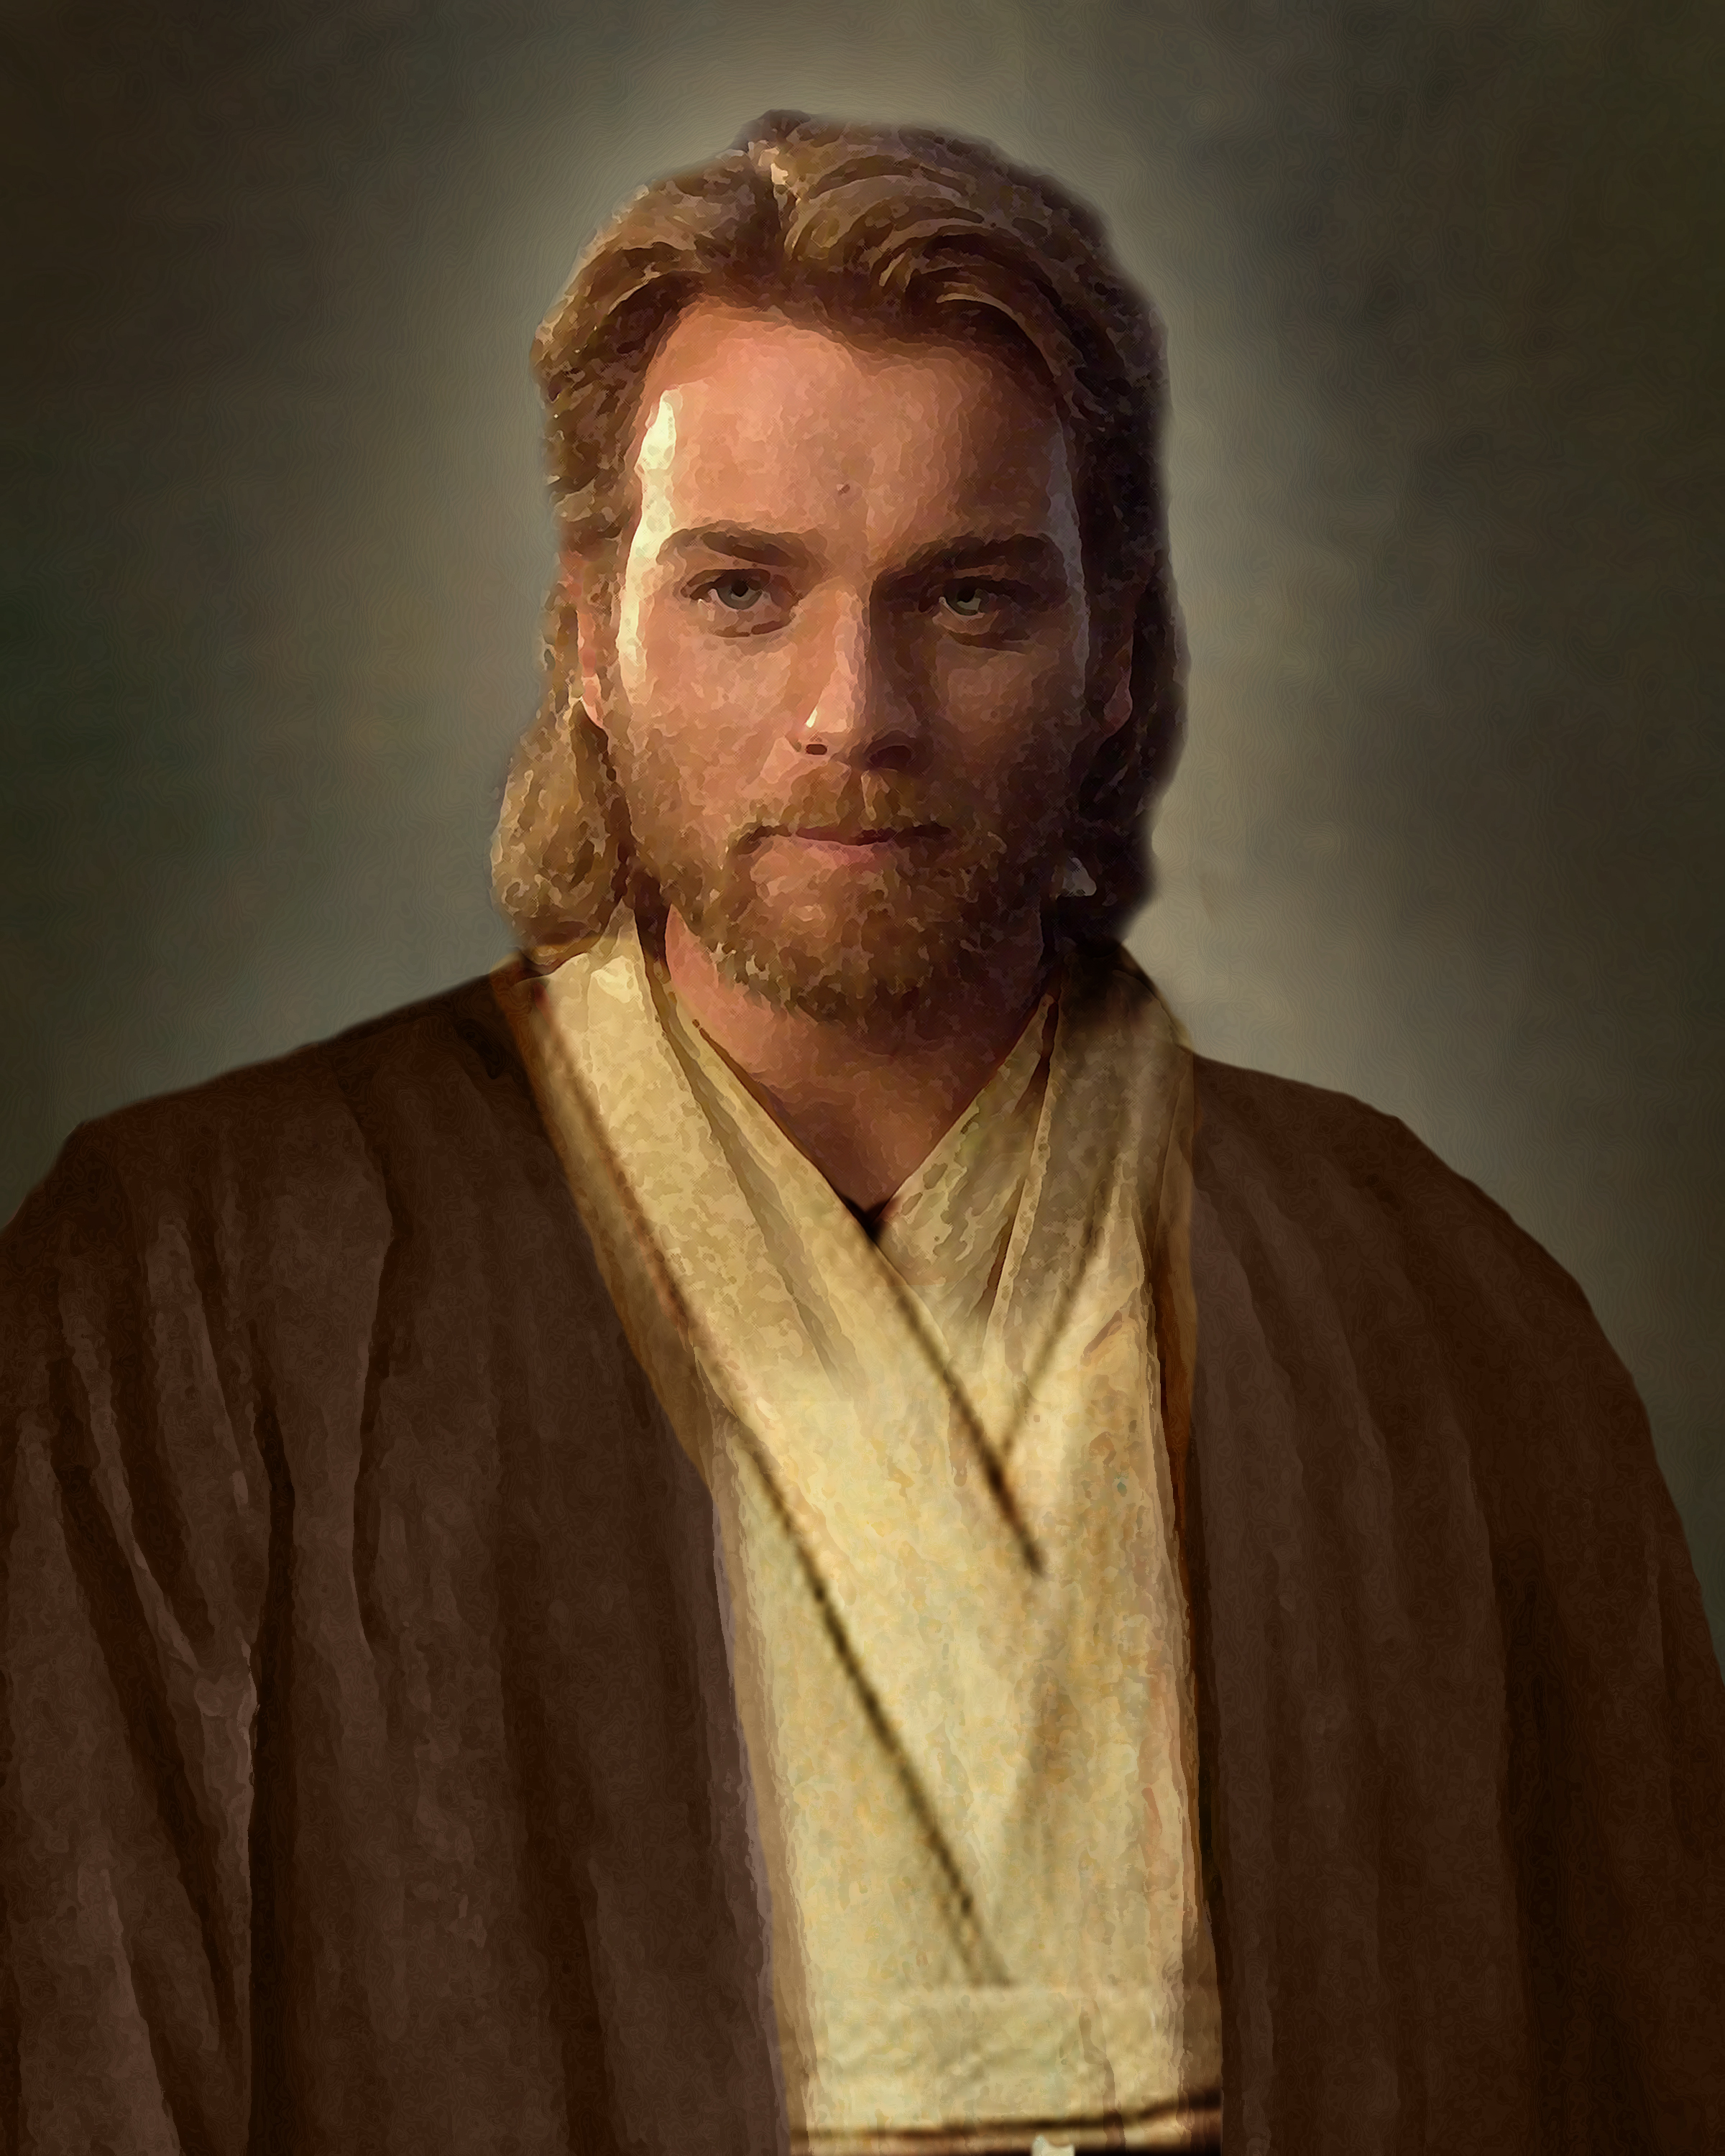 In honor of the Star Wars release this week heres my Obi Wan Jesus picture replacement I made